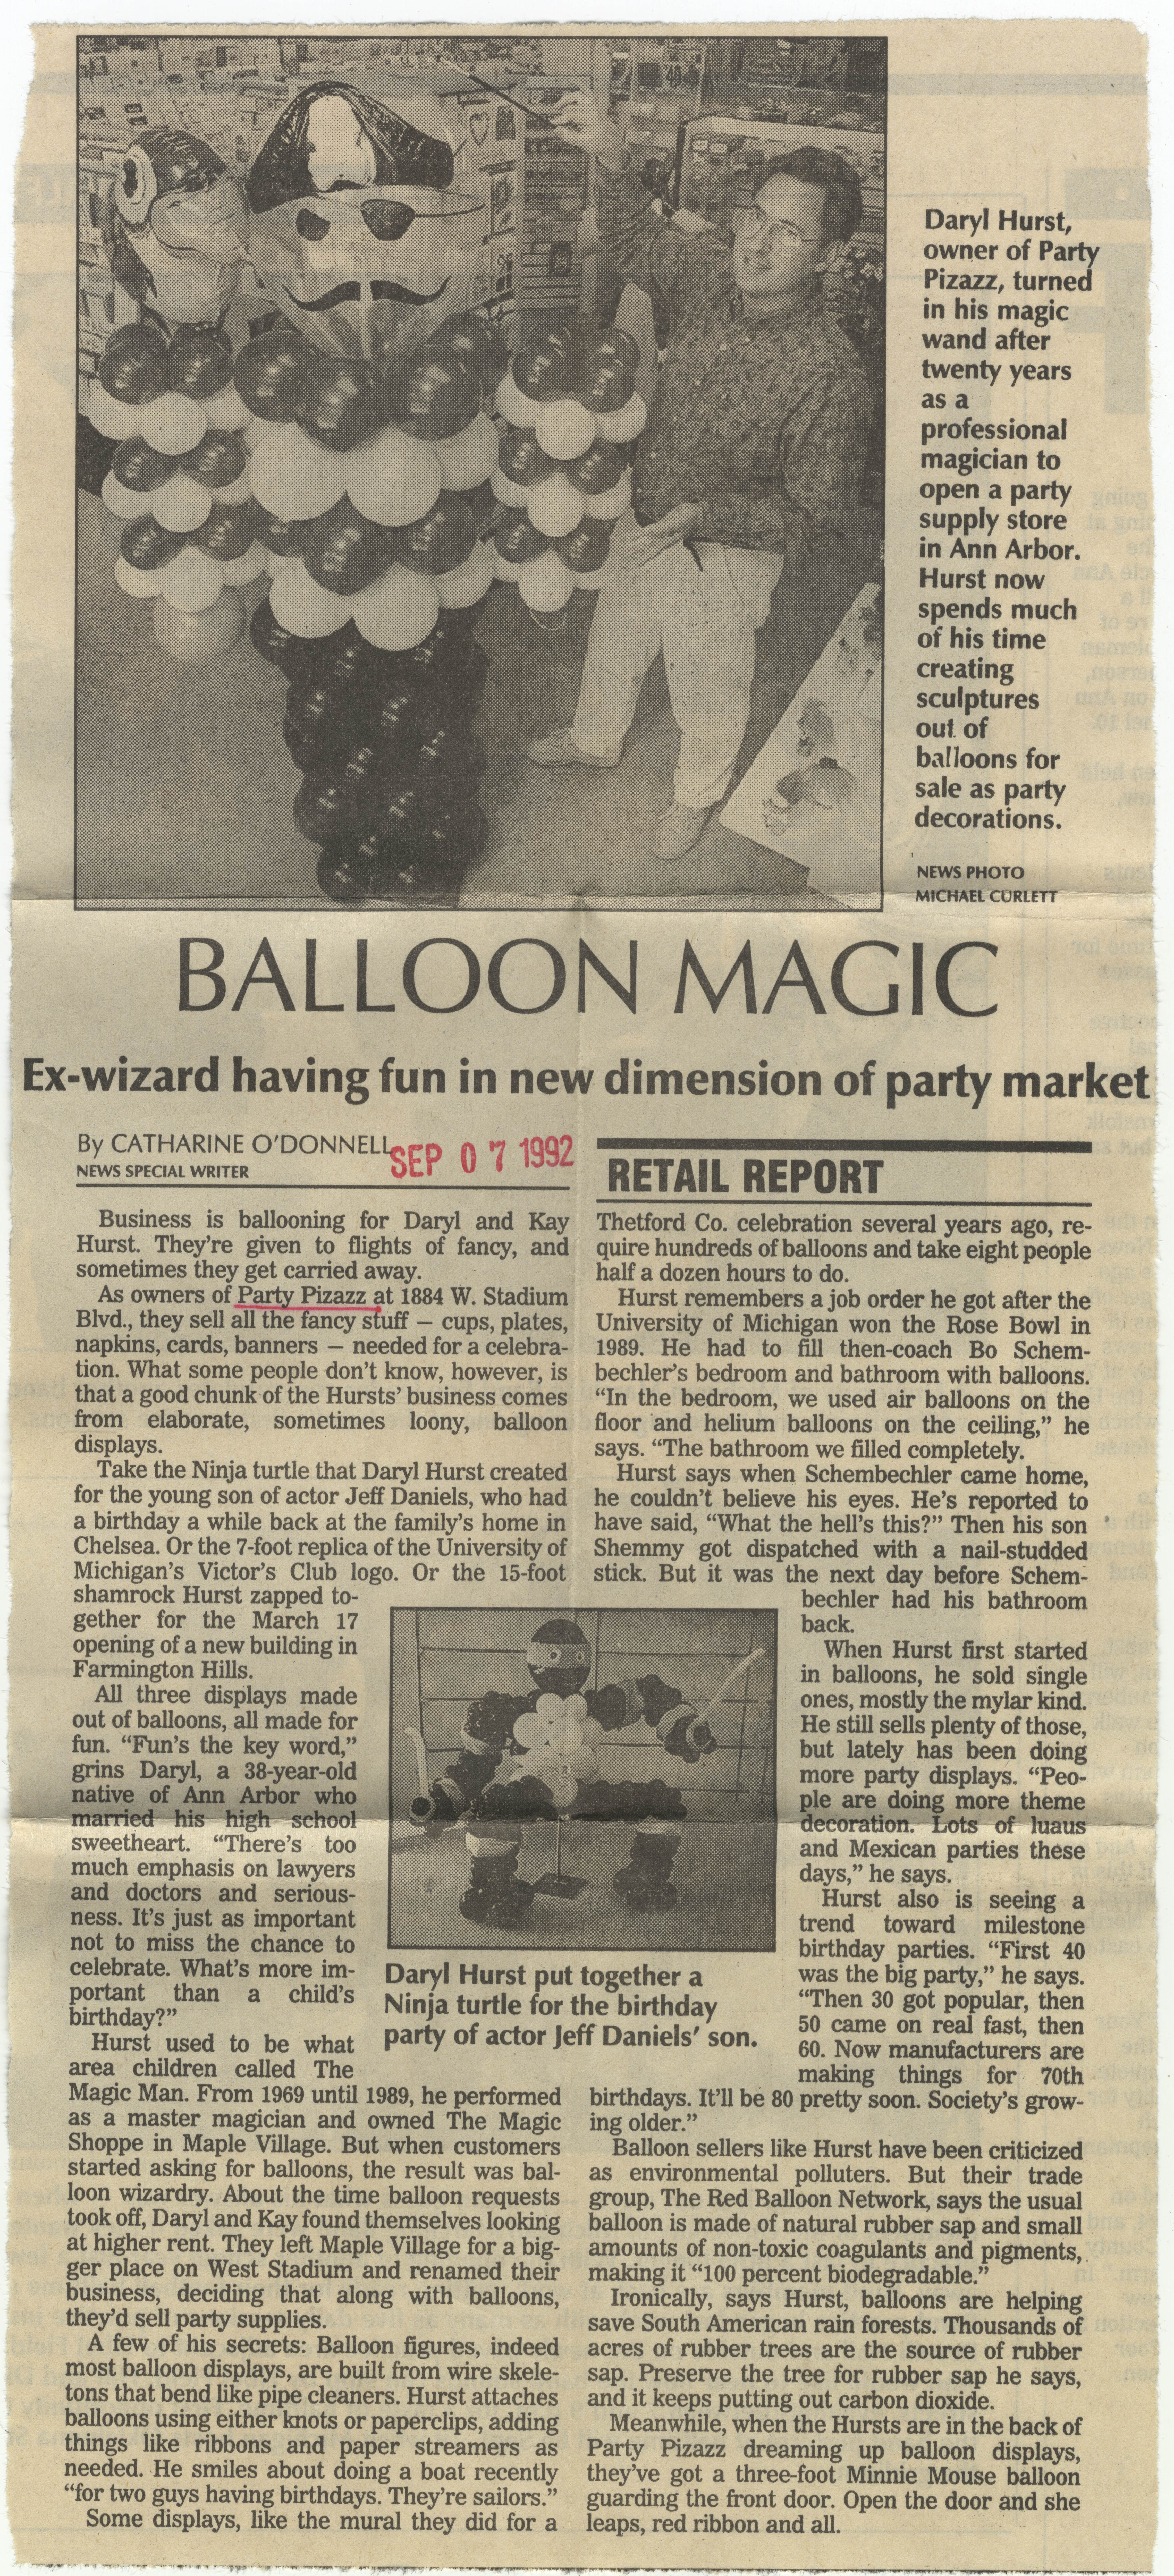 Balloon Magic image